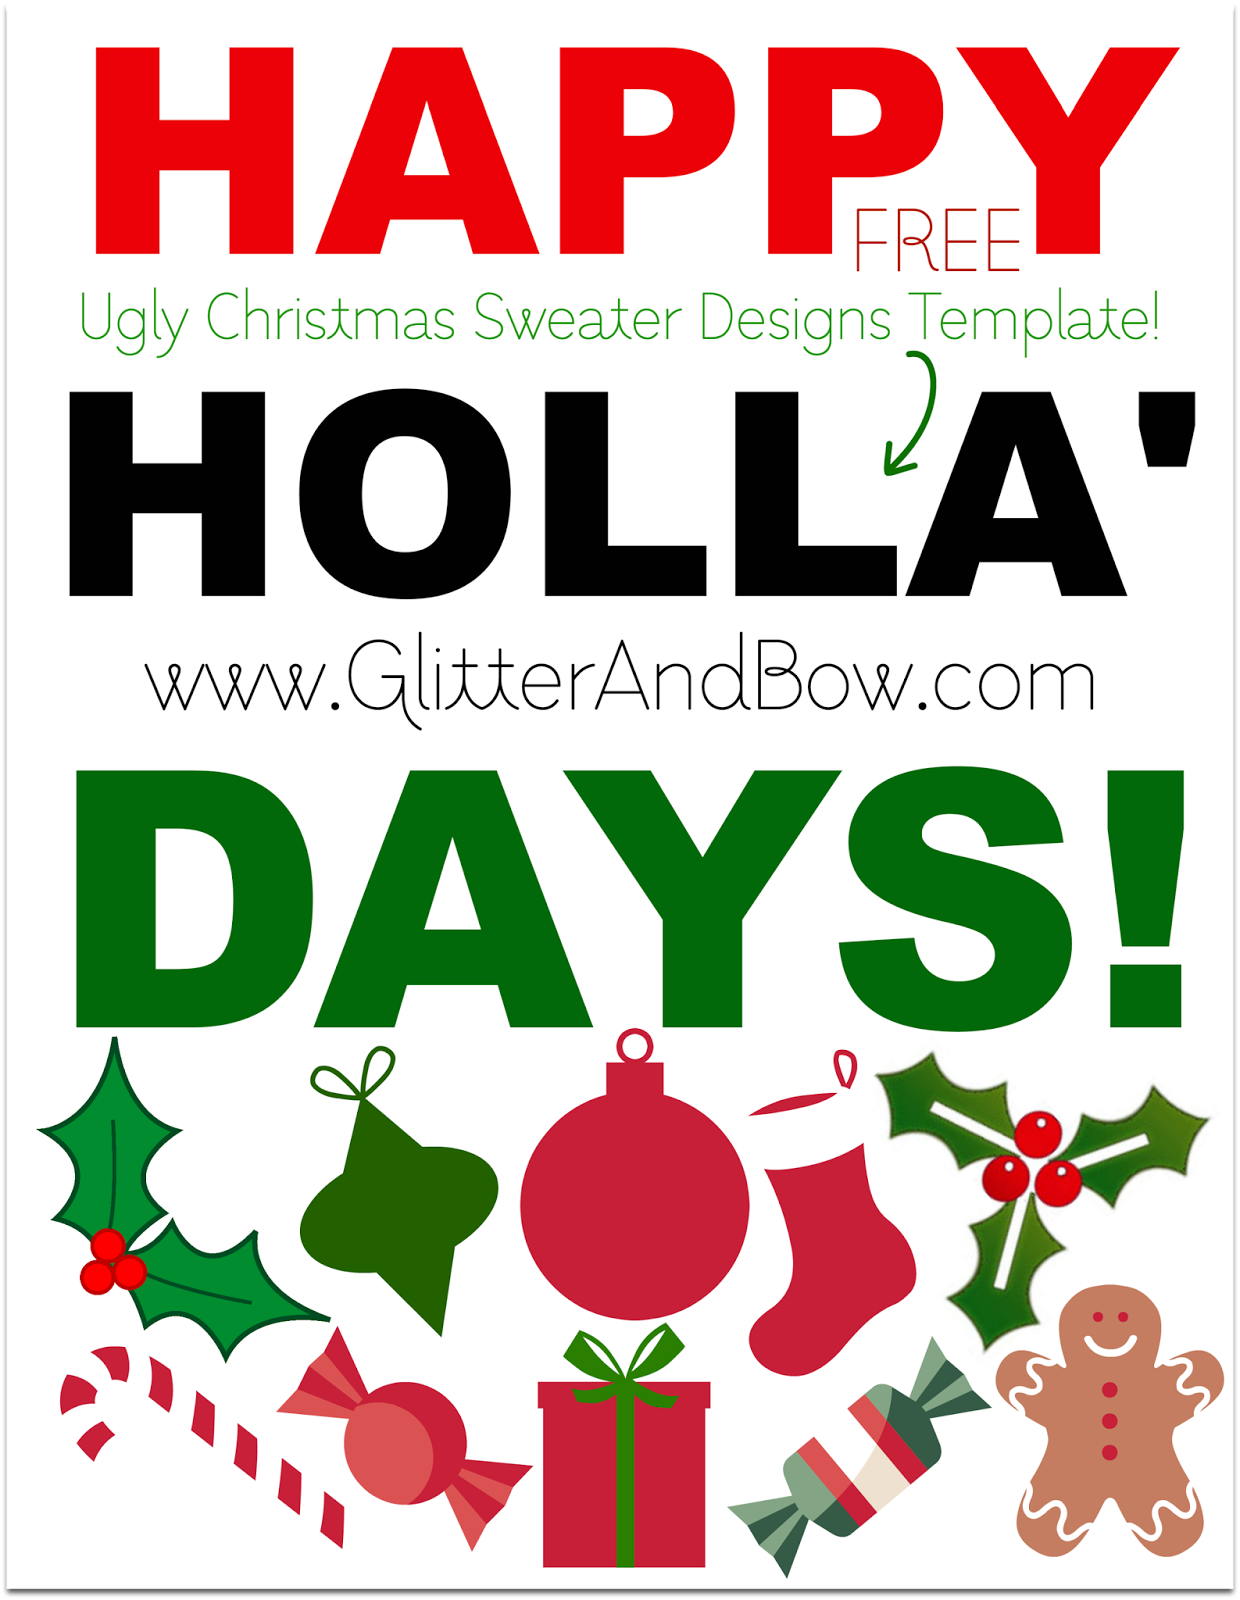 Super Easy Diy Ugly Tacky Christmas Sweater Free Printable Template